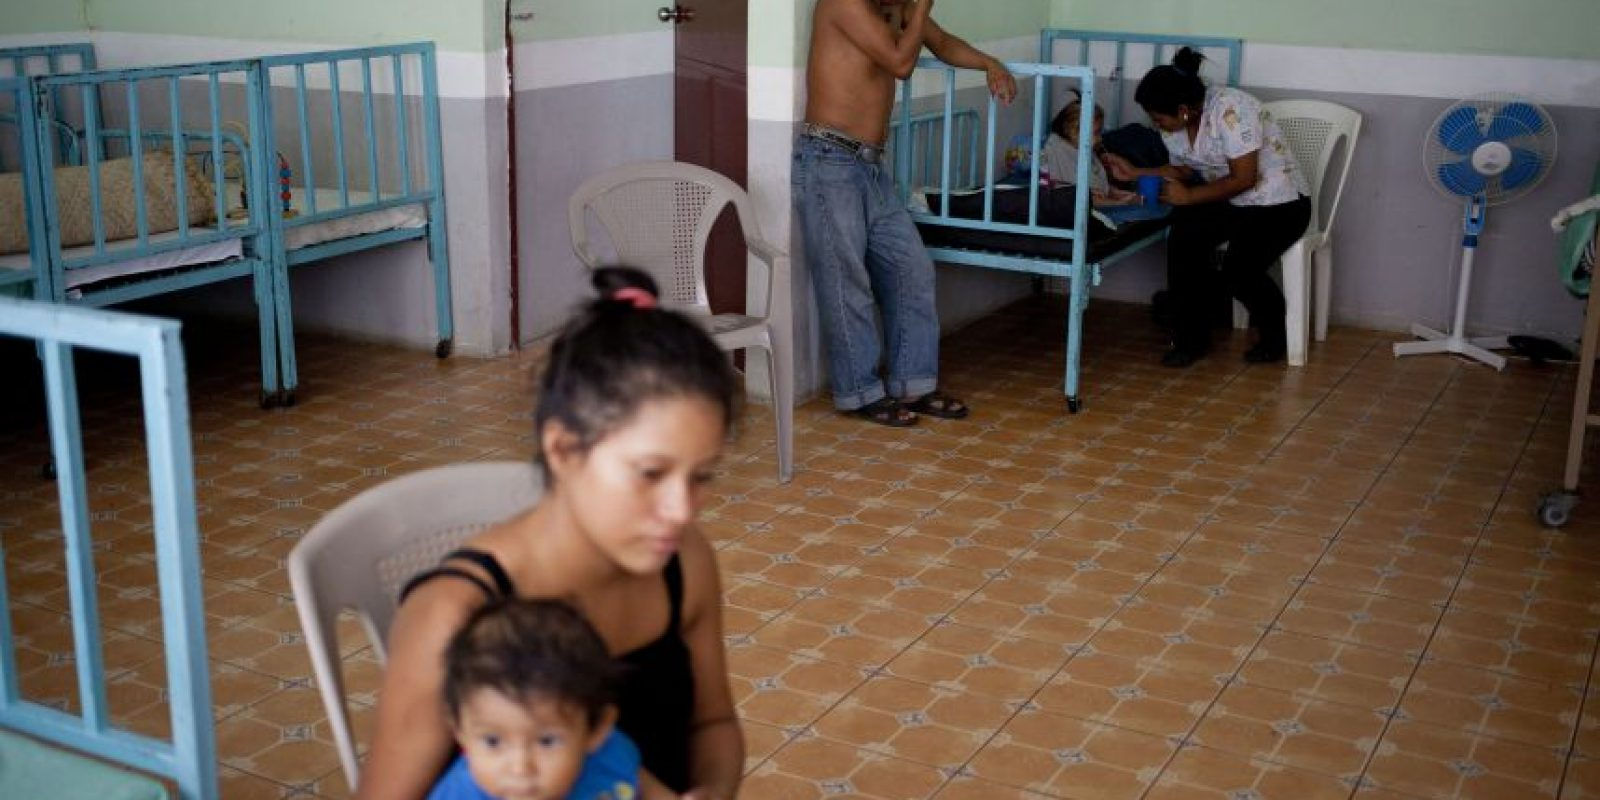 In this May 30, 2016 photo, Samuel de Jesus stands nearby as his two-year-old daughter Narcisa is checked by a nurse inside a public health clinic in San Juan Ermita, in Guatemala's eastern state of Chiquimula. Narcisa, who has spent 20 days at the clinic, is being treated for severe malnutrition. Foto: Moises Castillo/ AP